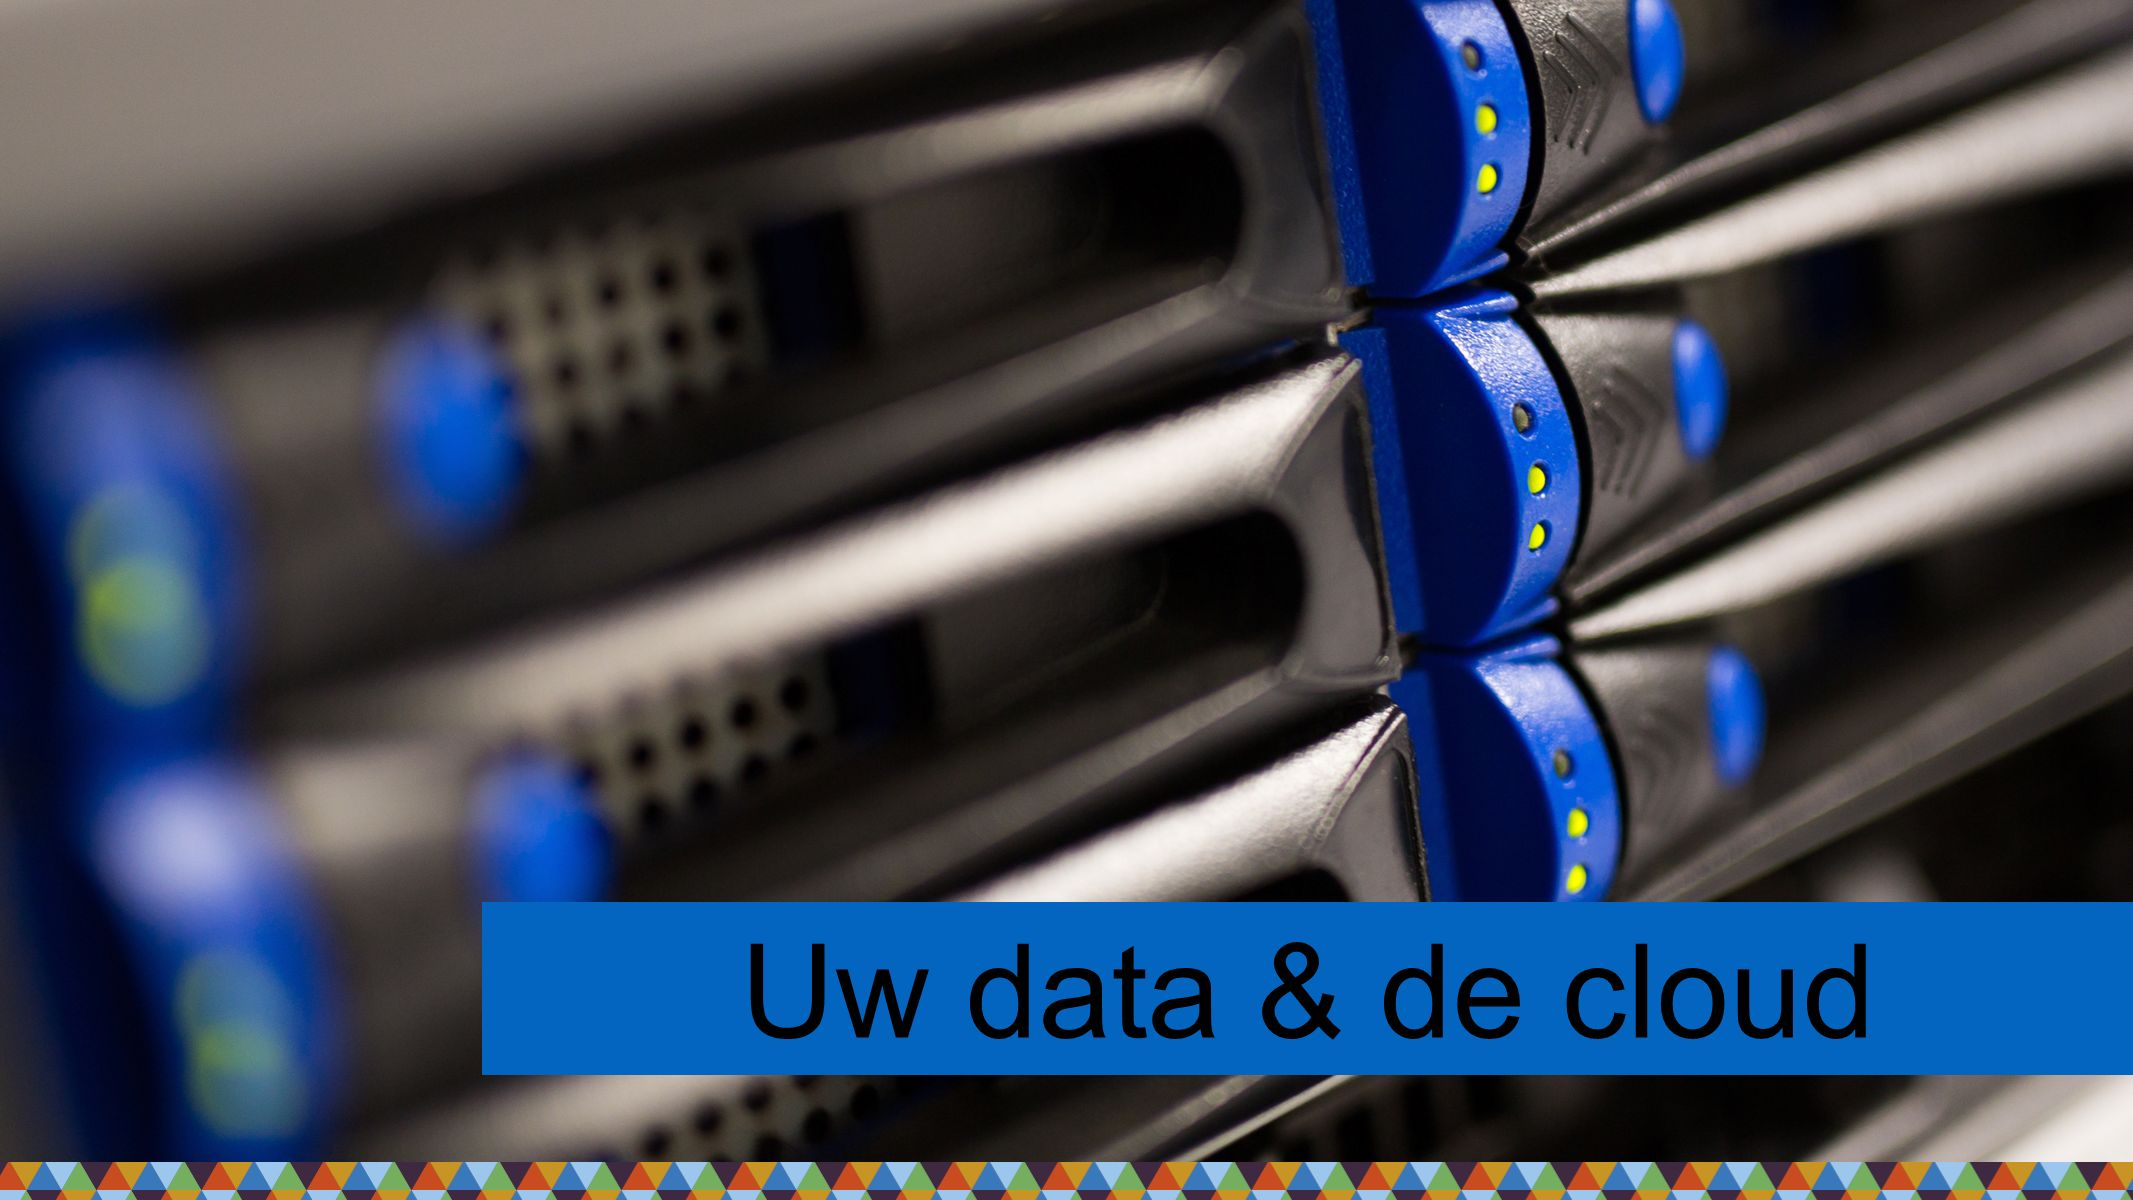 Uw data & de cloud